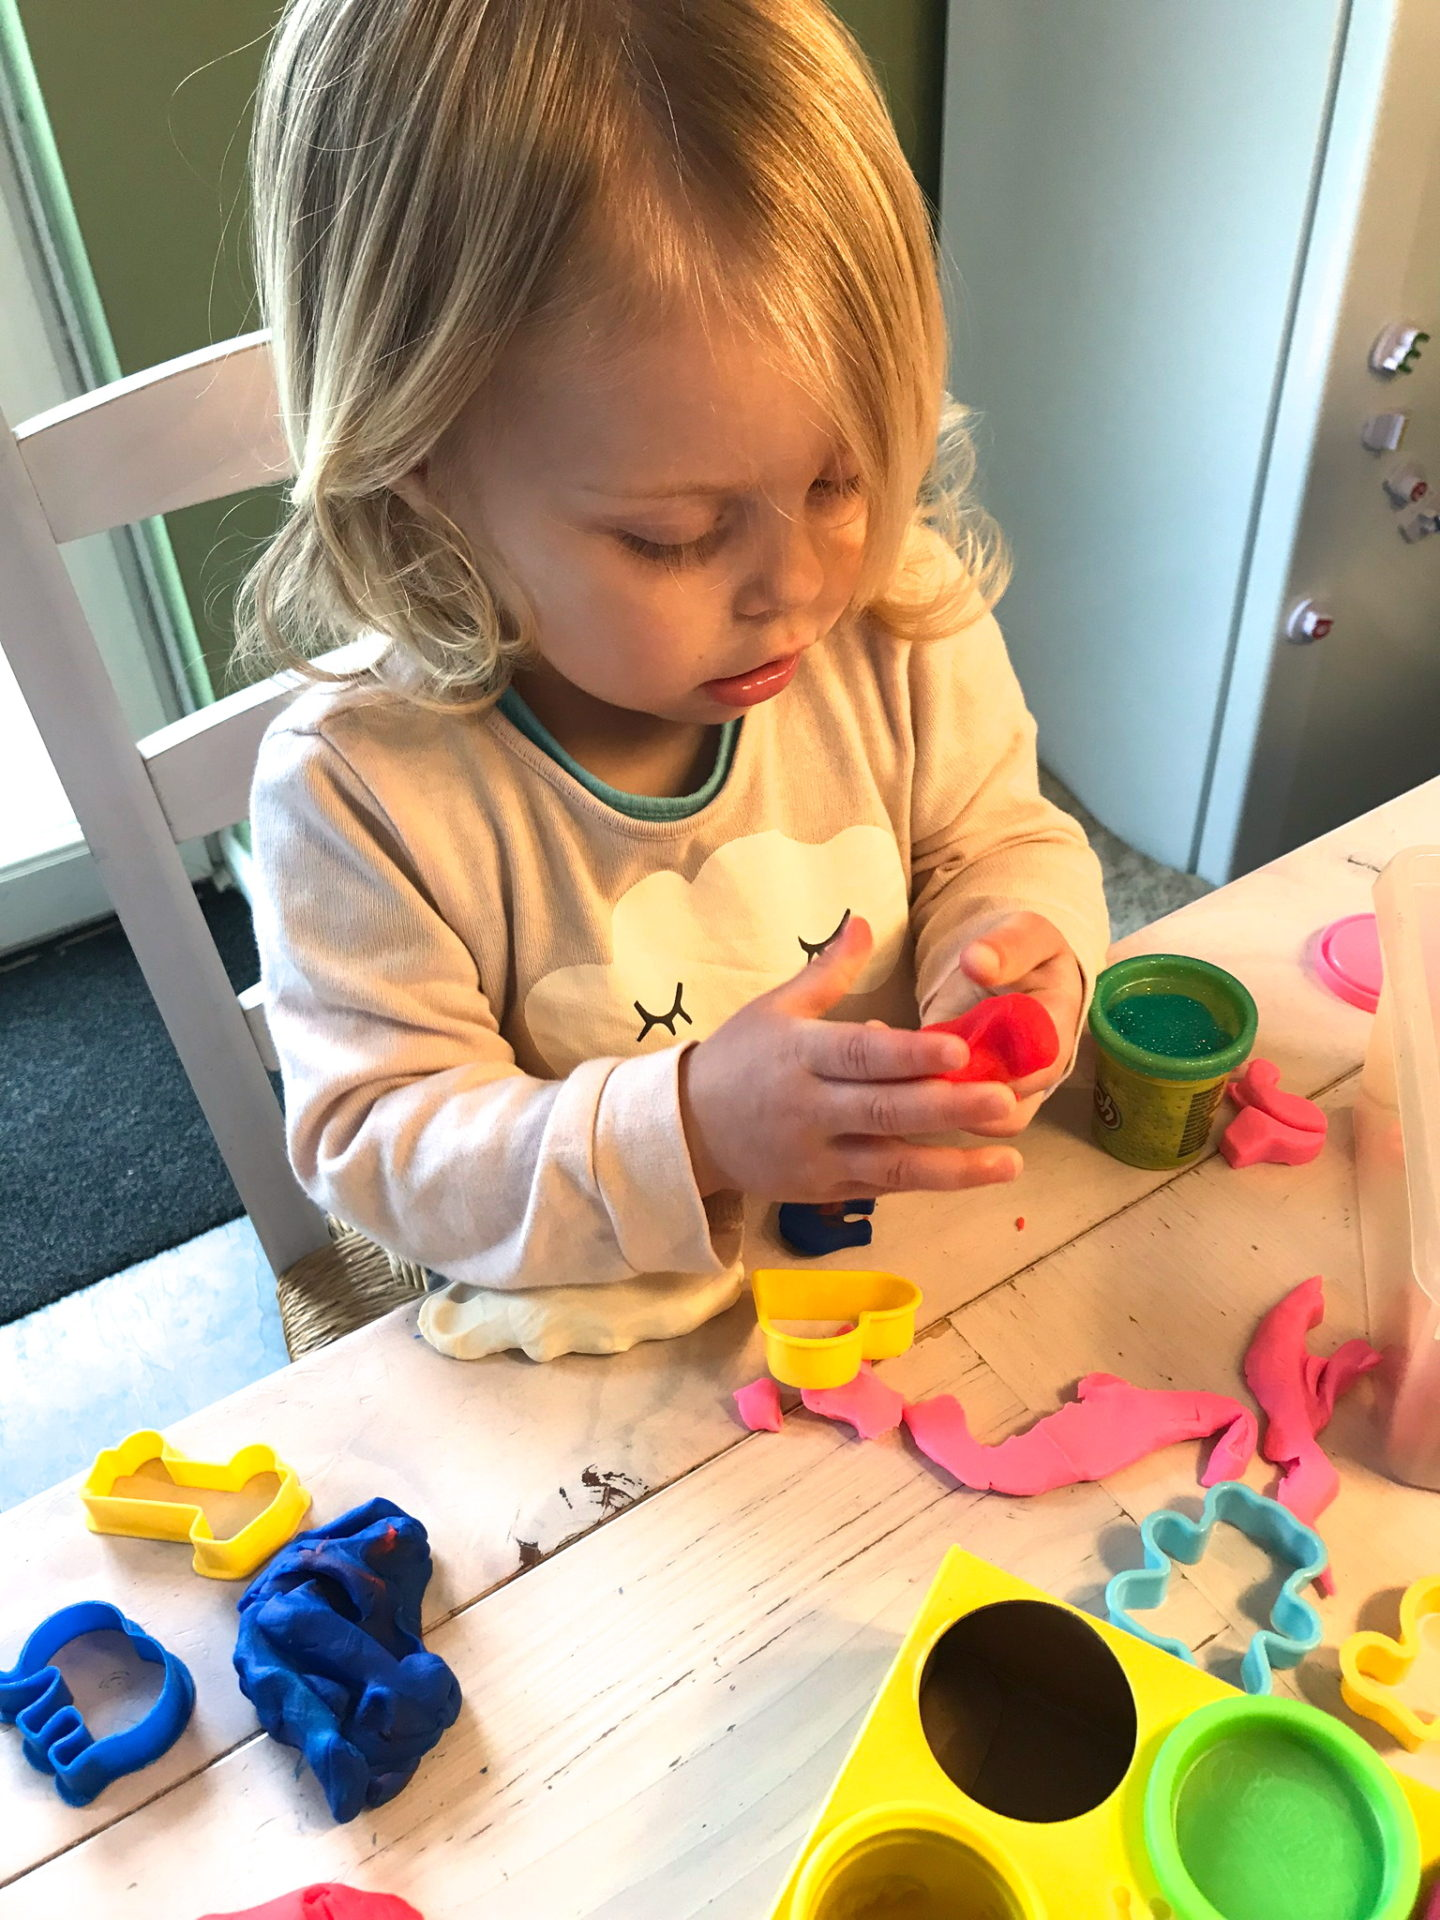 Two year old sitting at a table, playing with Play Doh